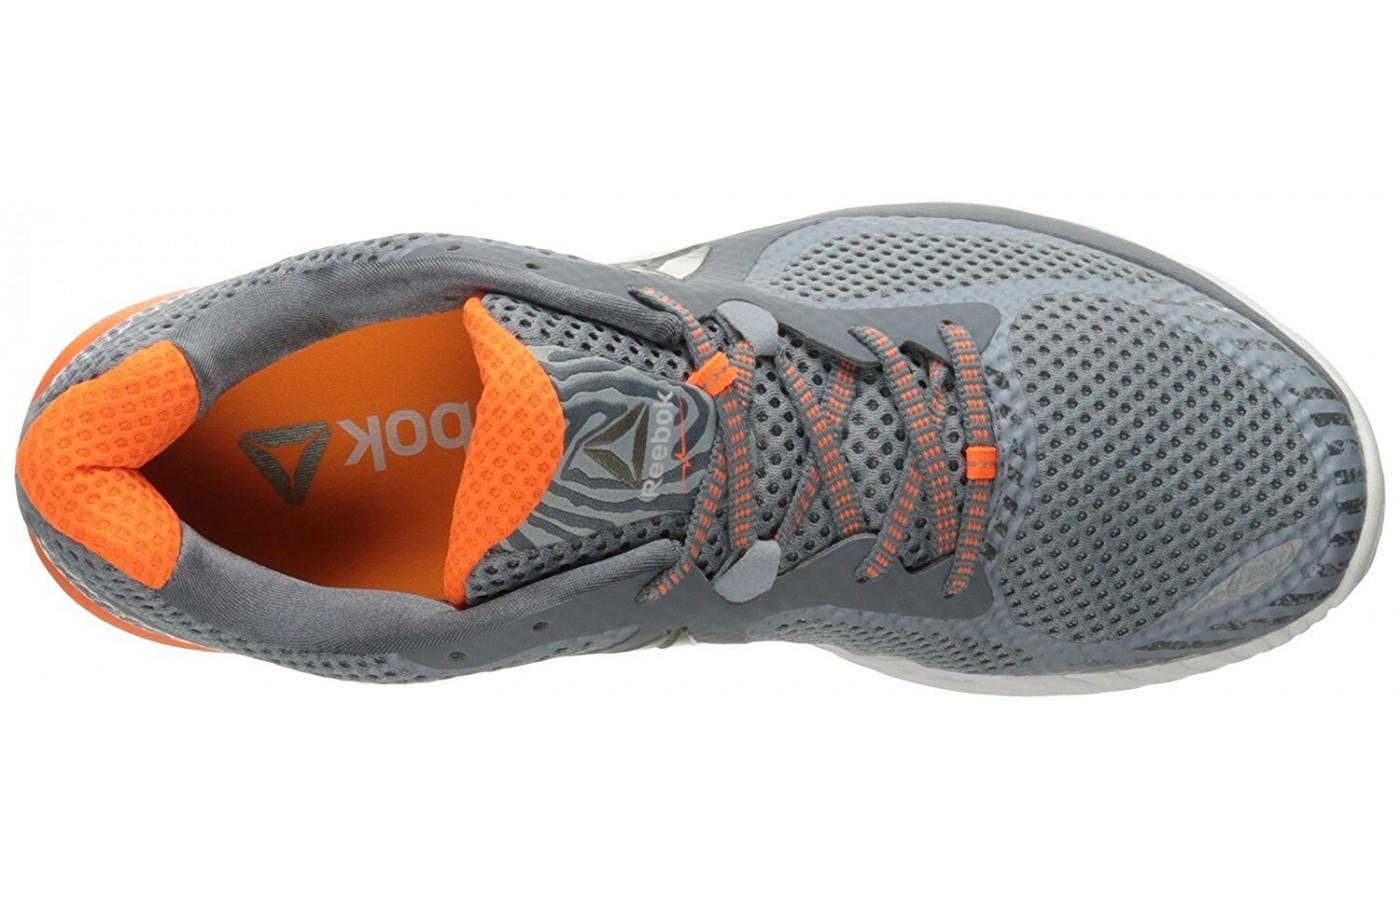 the upper of the Reebok Harmony Road is highly breathable and comfortable